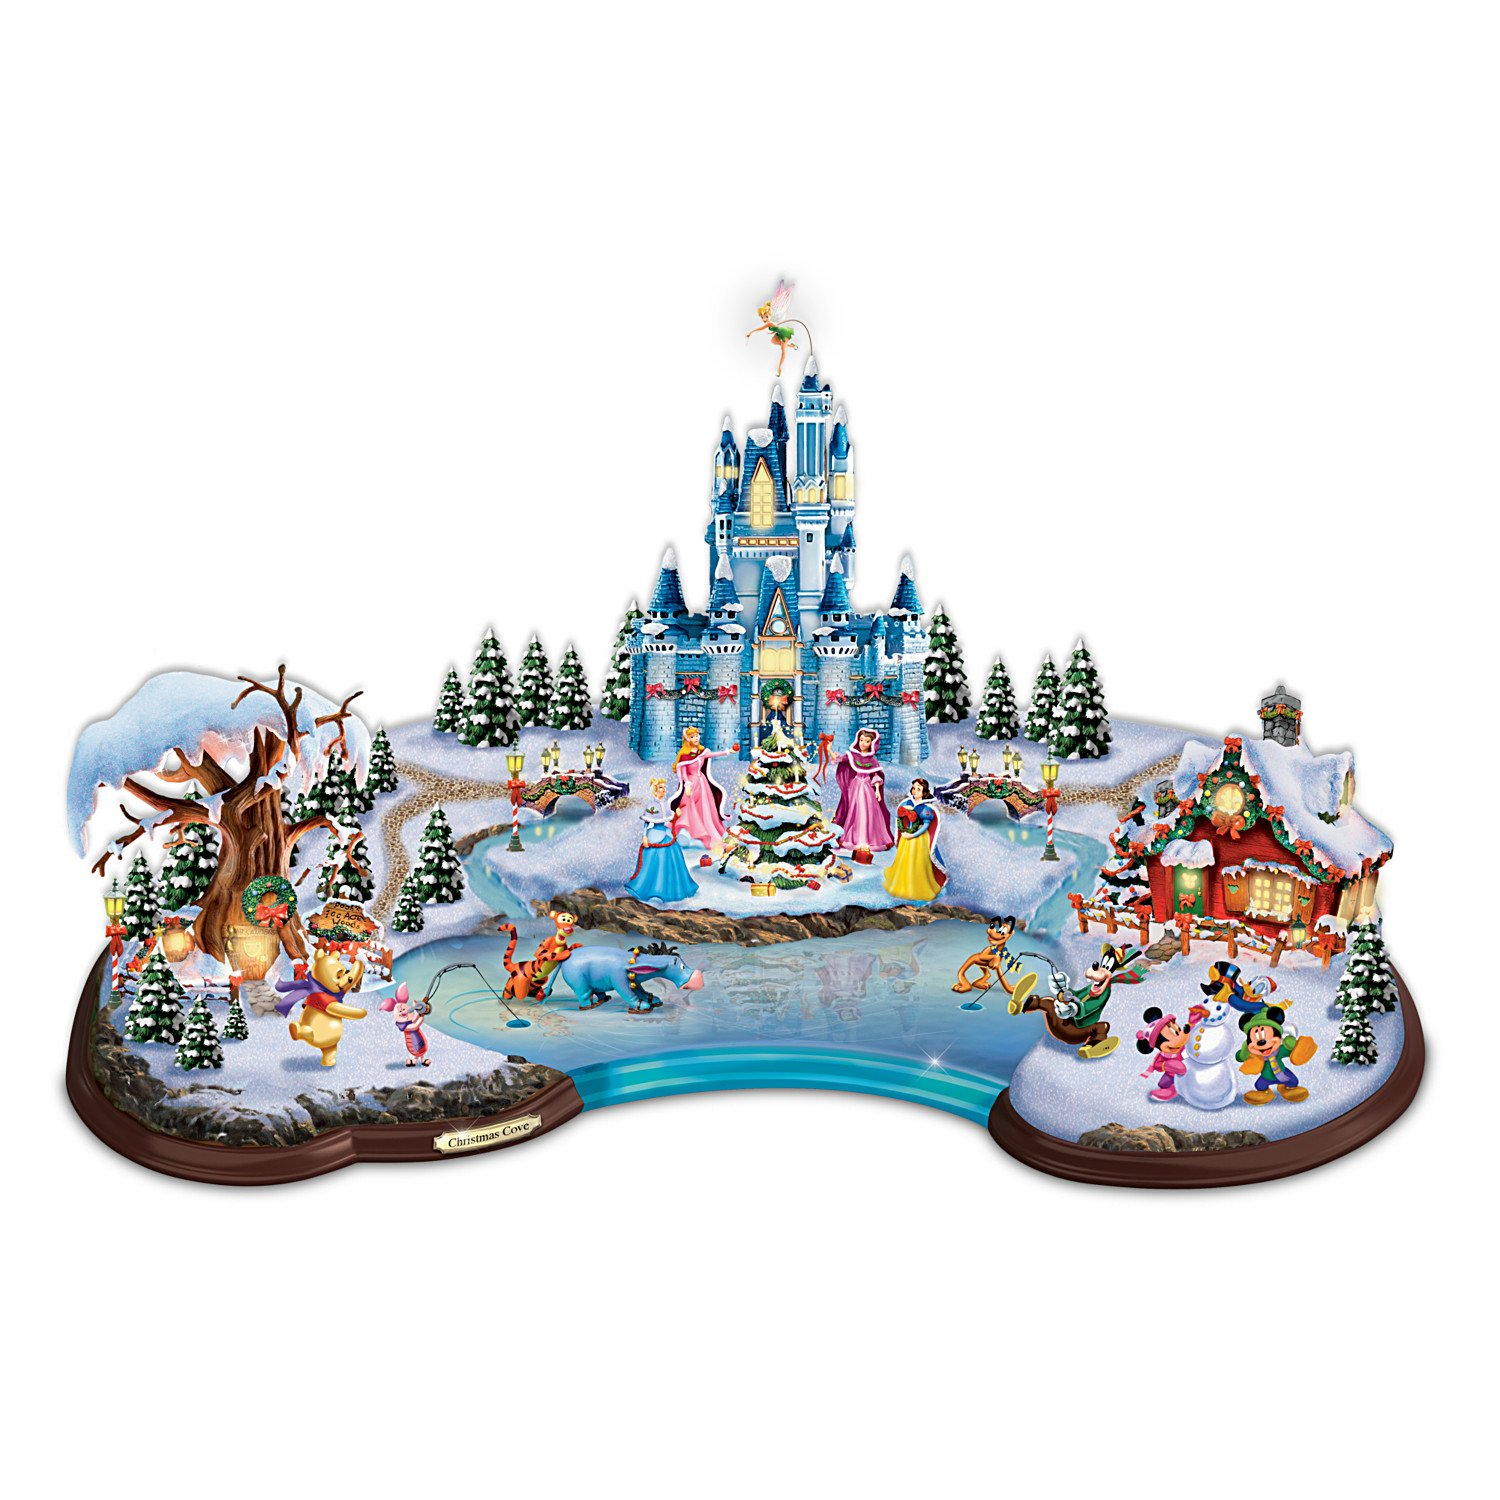 amazoncom disney light up christmas cove village sculpture by hawthorne village home kitchen